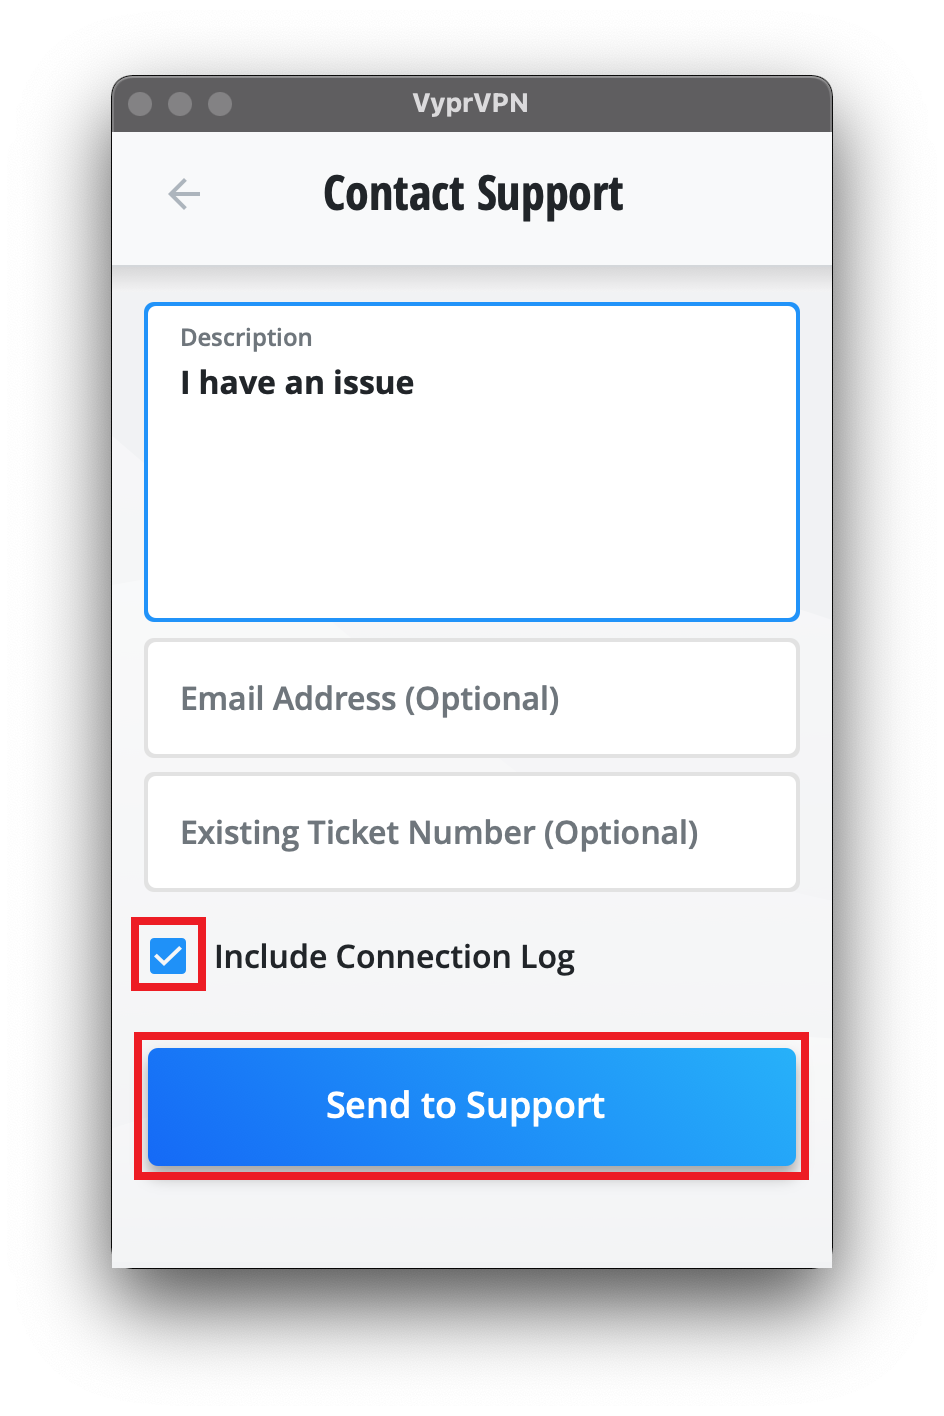 Vypr_App_-_Contact_Support_-_Checkbox_and_Sent_to_Support_Selected.png